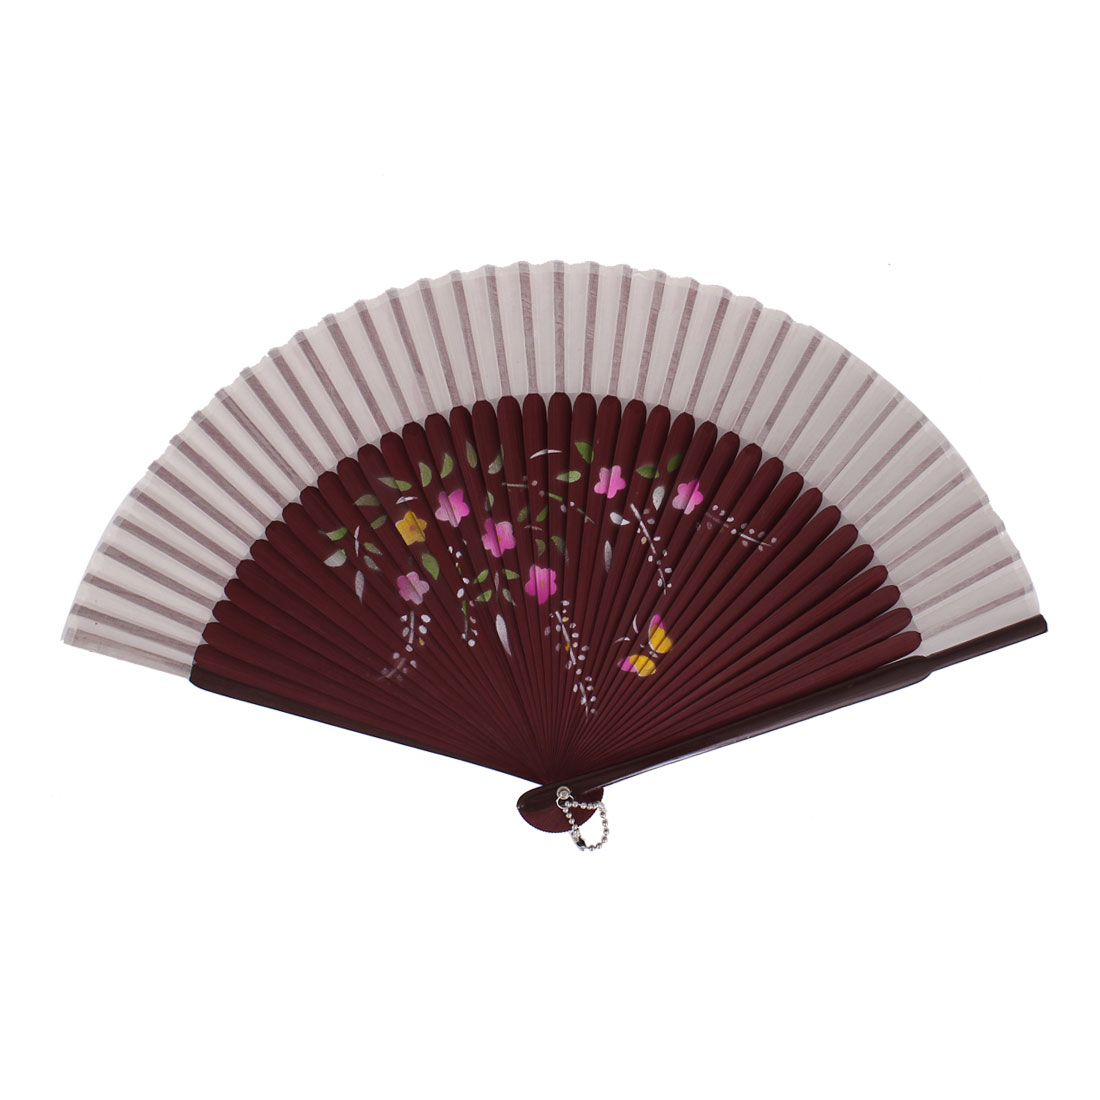 Chinese Style Yellow Butterfly Print Bamboo Handheld Collapsible Hand Fan White Burgundy